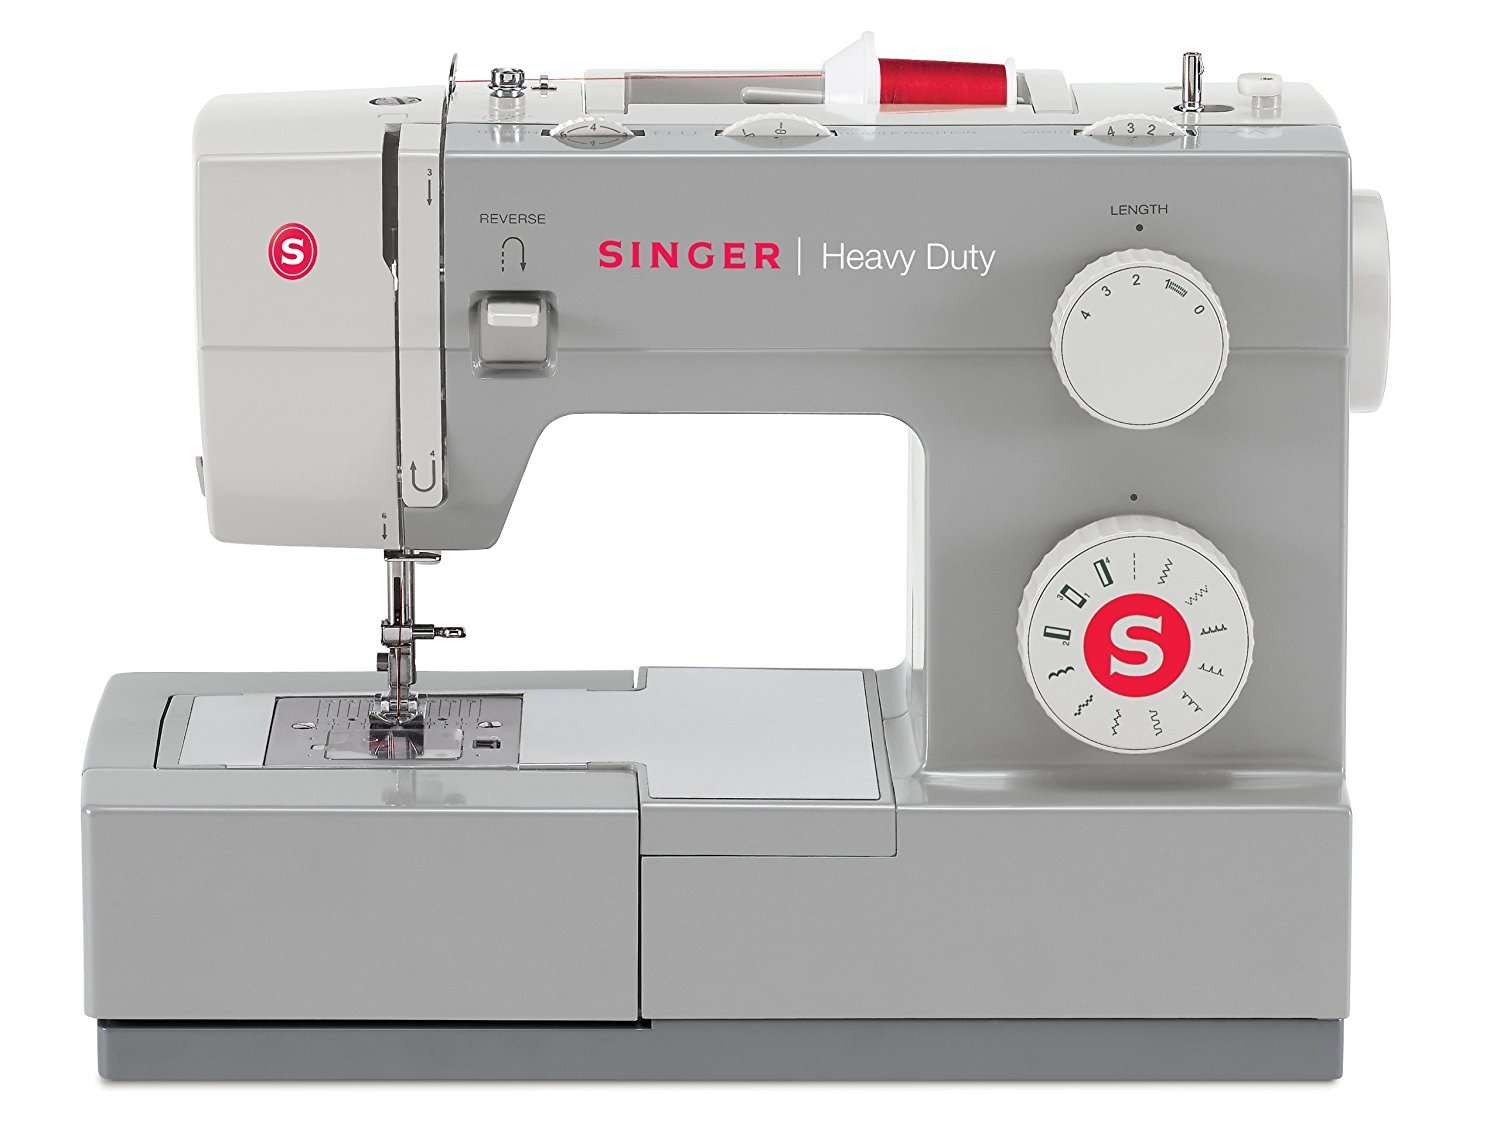 SINGER | Heavy Duty 4411 Sewing Machine with 11 Built-in Stitches, Metal Frame and Stainless Steel Bedplate, Great for Sewing All Fabrics by SINGER